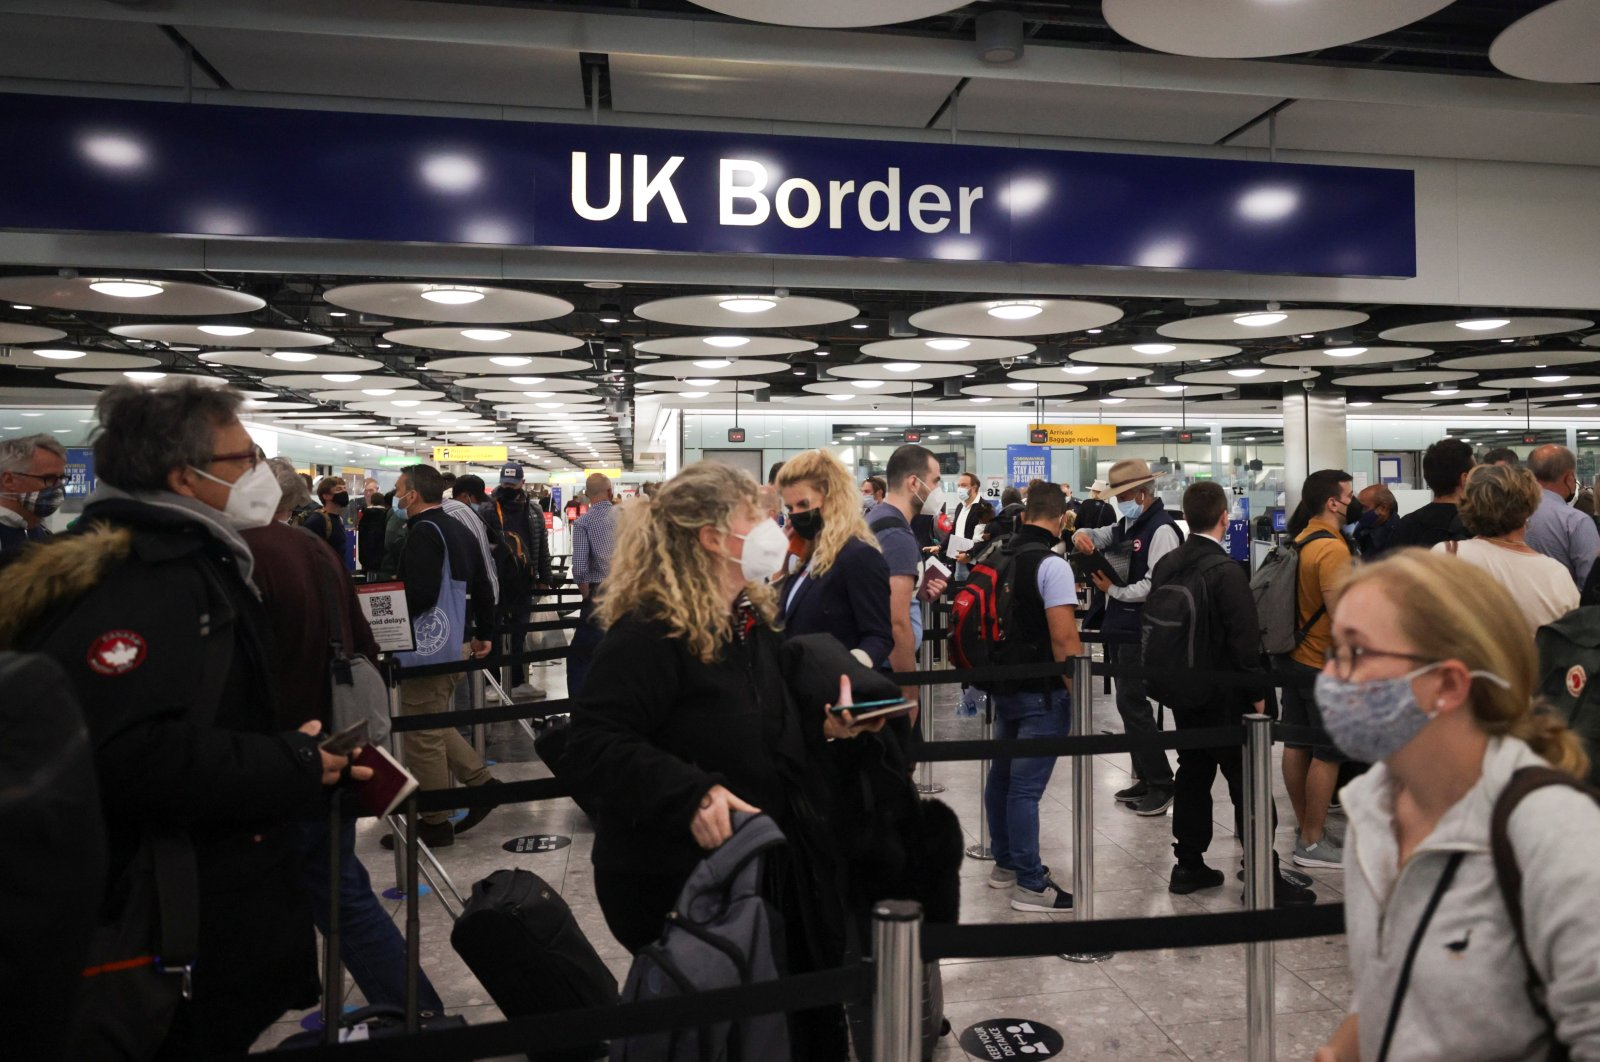 Arriving passengers wait in line at the UK Border Control at Terminal 5 of Heathrow Airport in London, Britain June 29, 2021. (Reuters Photo)